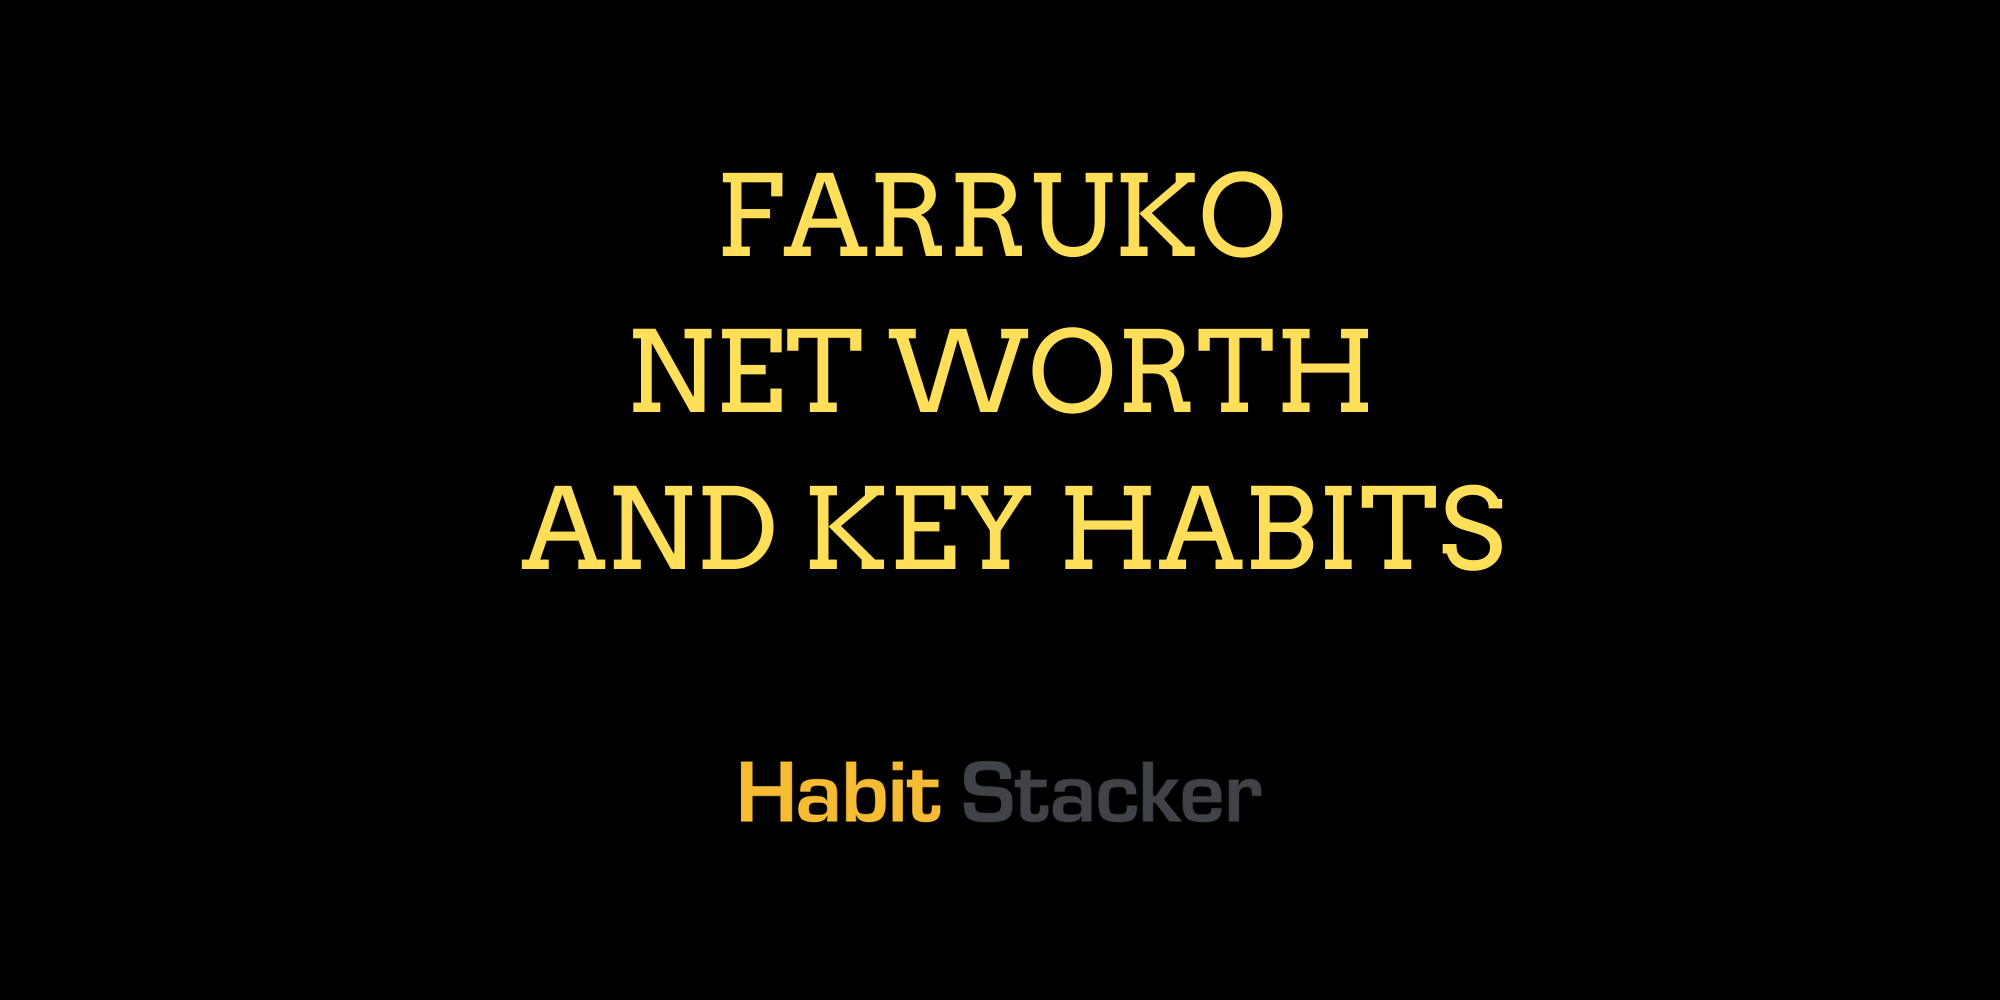 Farruko Net Worth and Key Habits